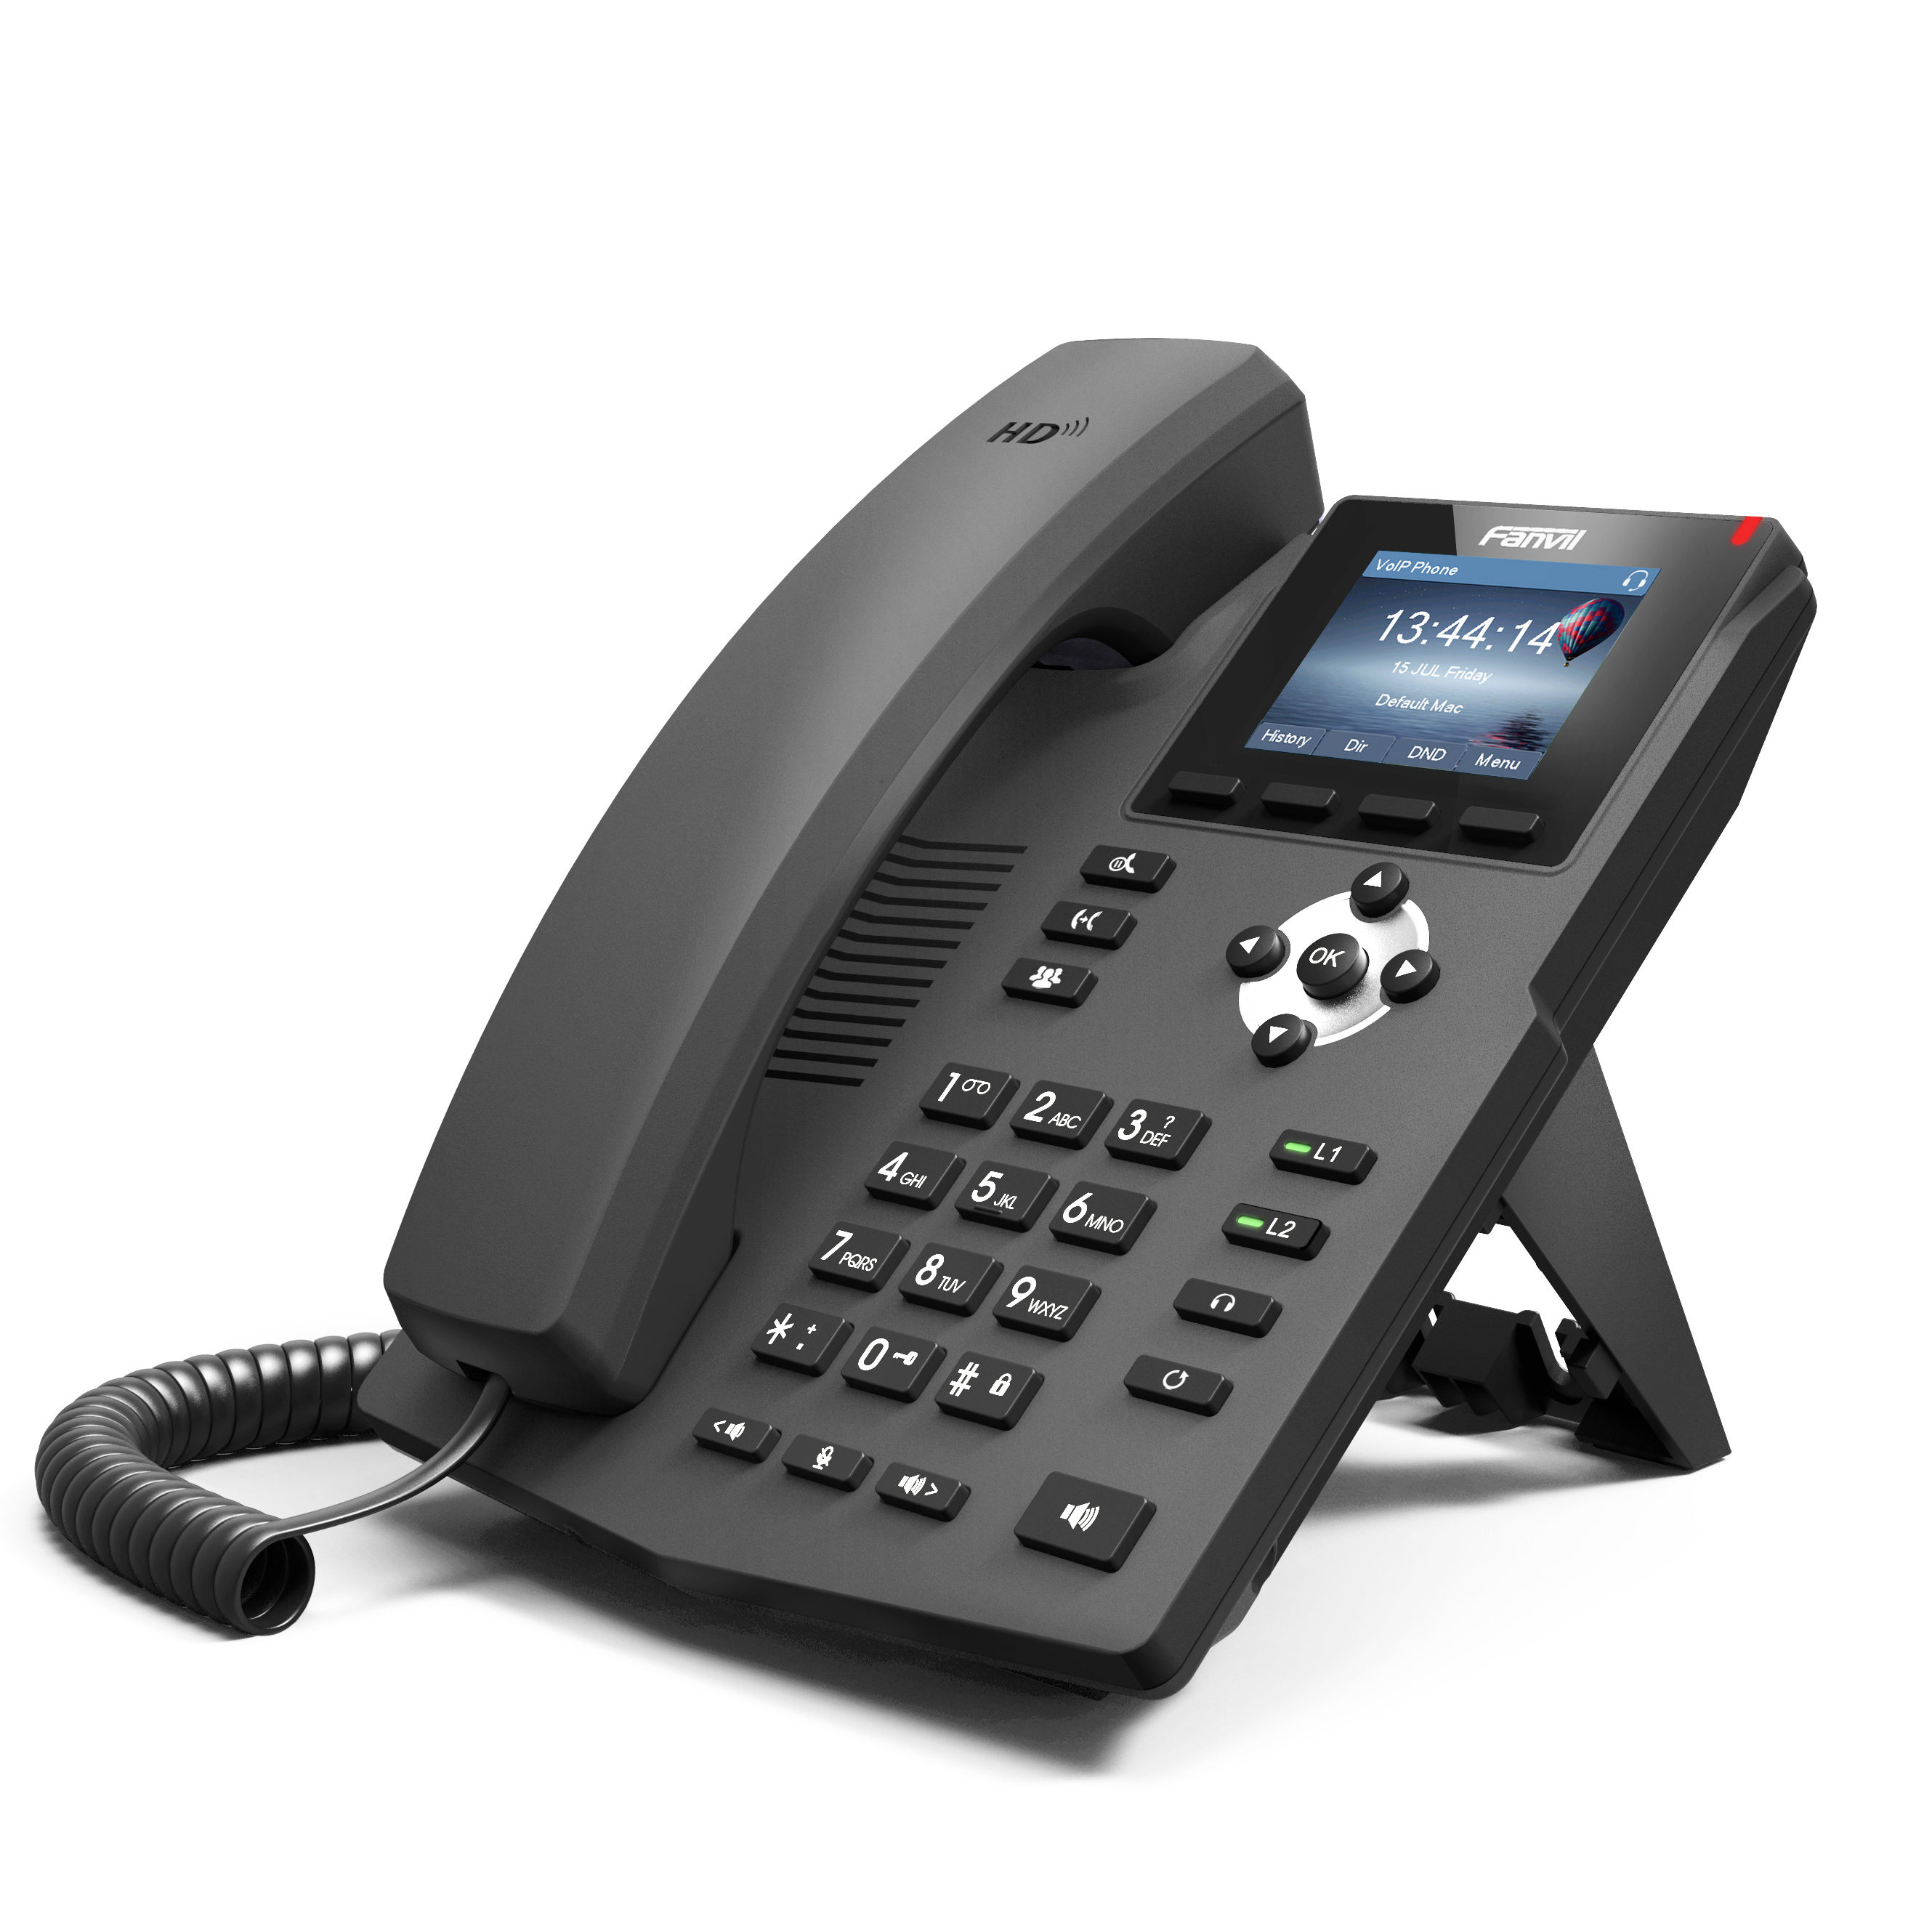 Telepon Ip <span class=keywords><strong>Voip</strong></span> X3s Telepon Ip Telepon Bisnis <span class=keywords><strong>VoIP</strong></span> untuk Pekerjaan Kantor